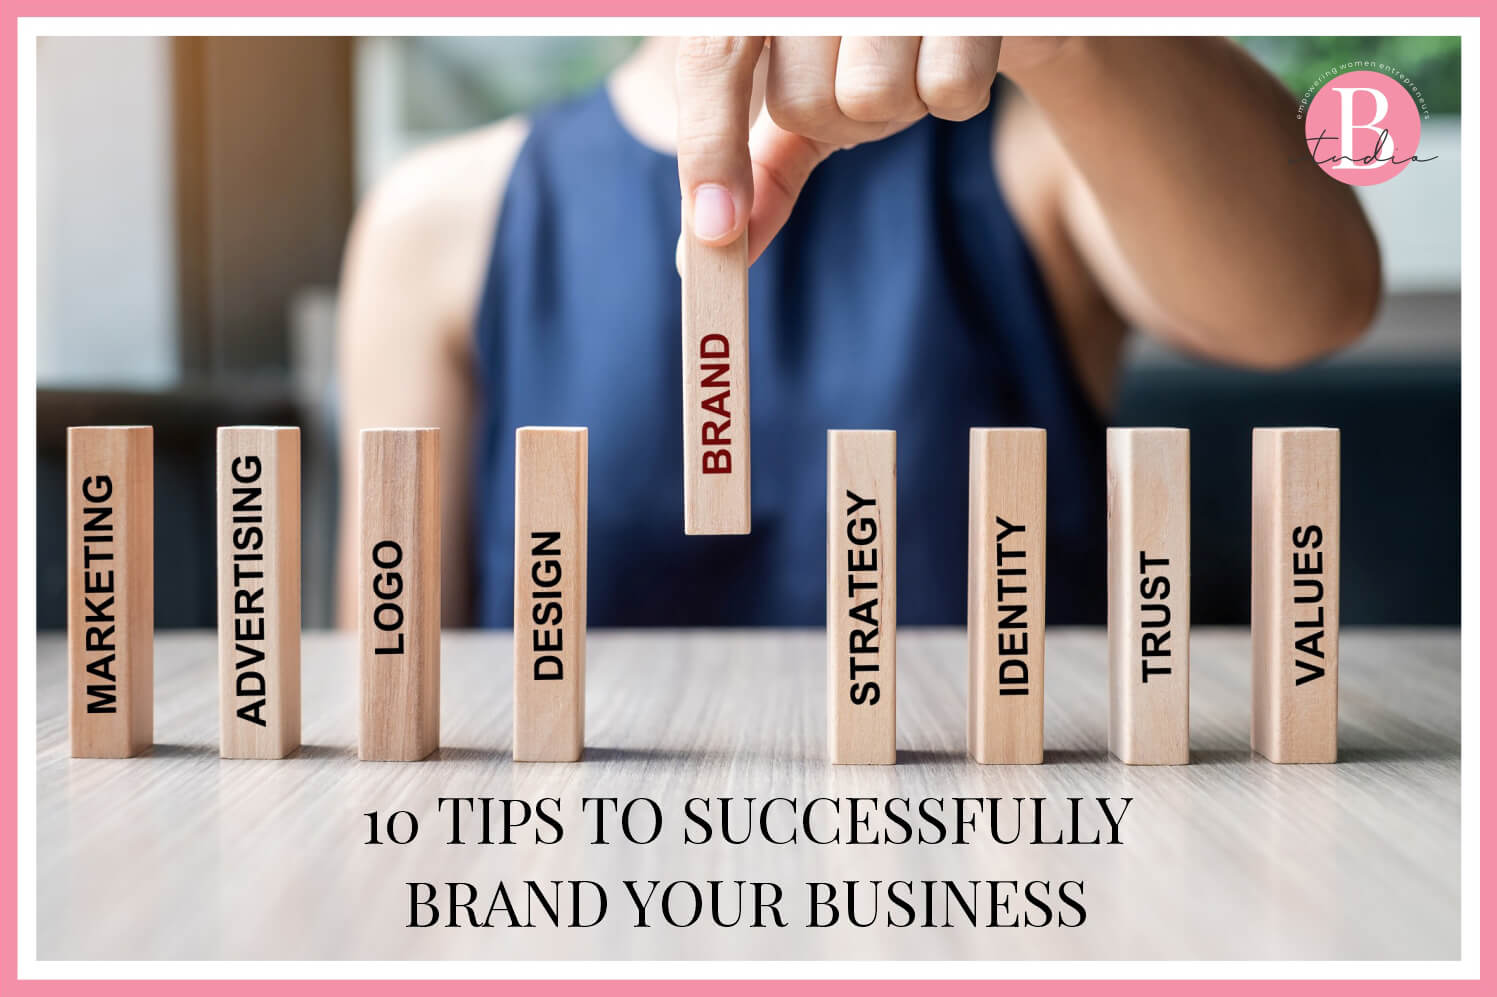 10 tips to successfully brand your business img